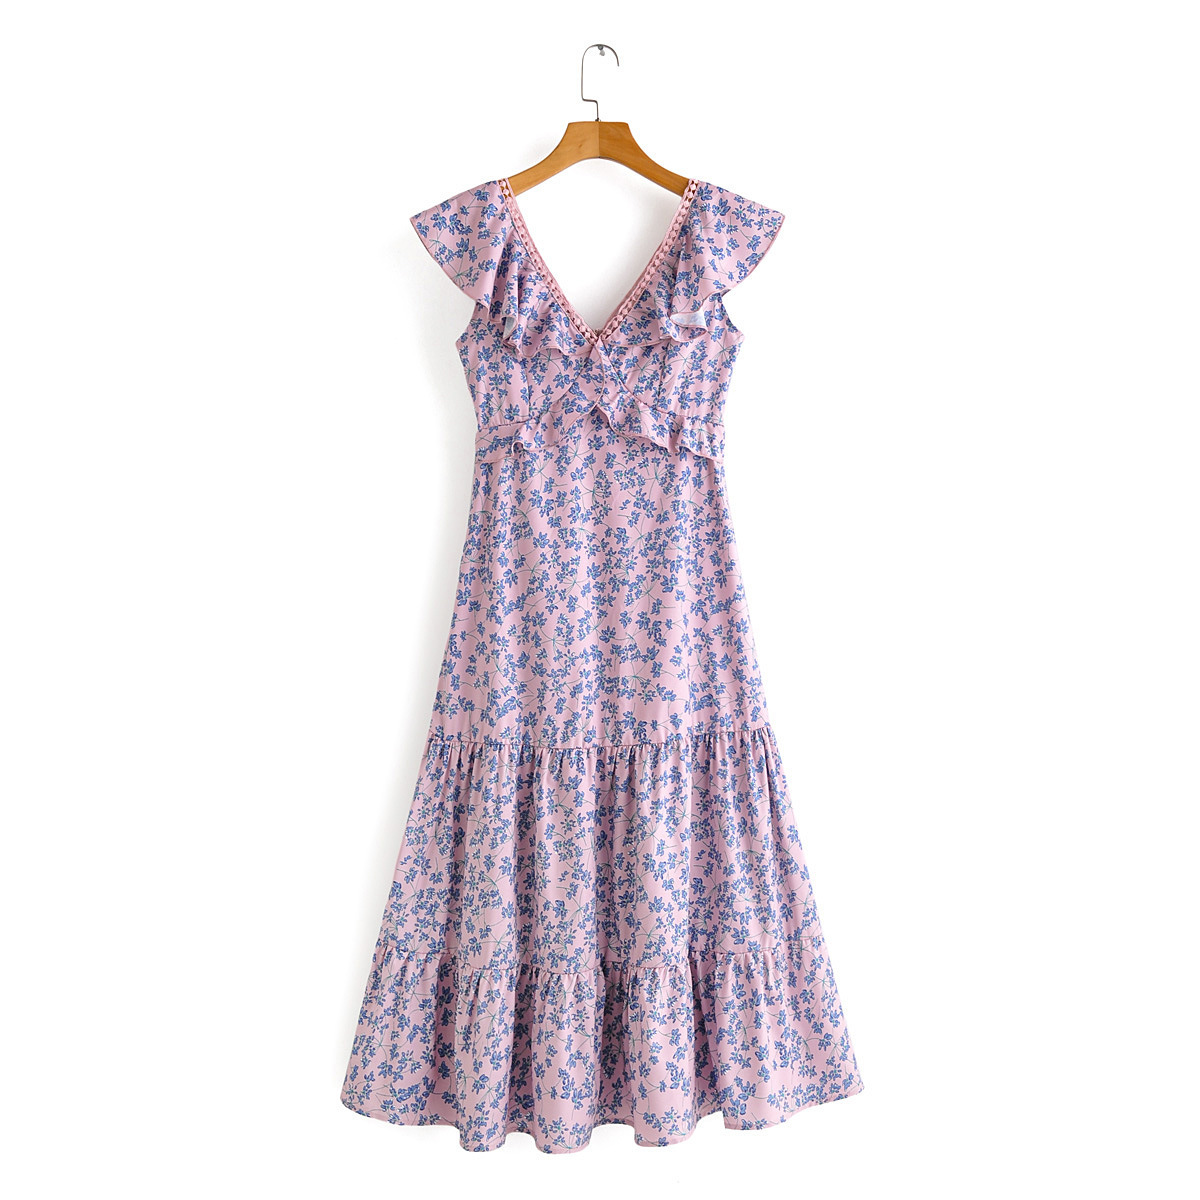 2020 European and American spring women's new wholesale Ruffle V-neck Printed Dress